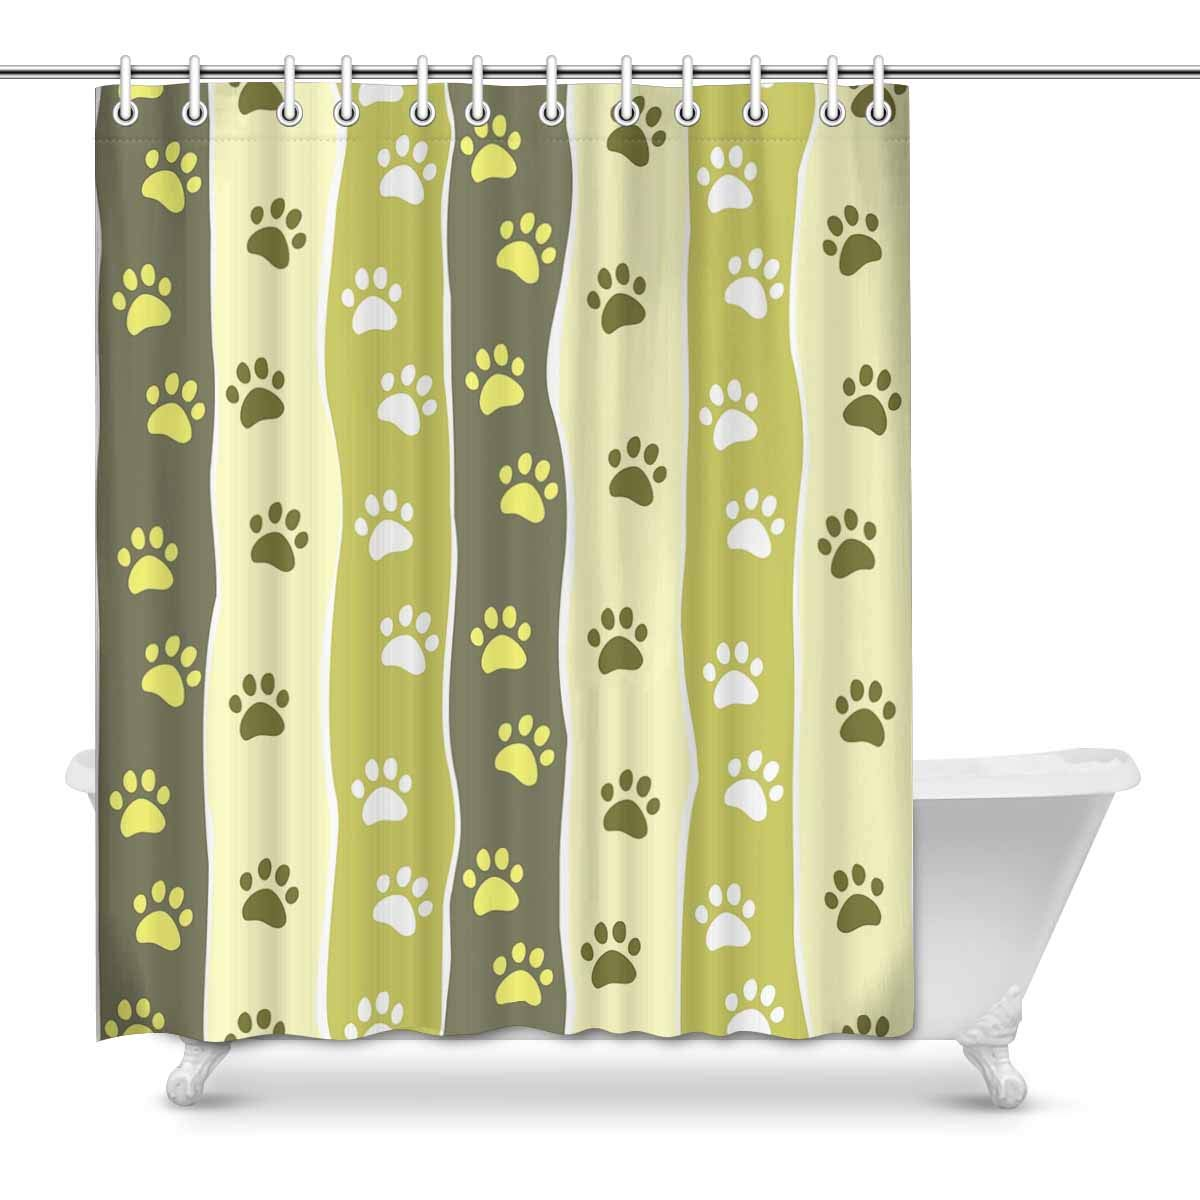 Pop Paw Striped House Decor Shower Curtain For Bathroom Bathroom Shower Curtain Set 60x72 Inch